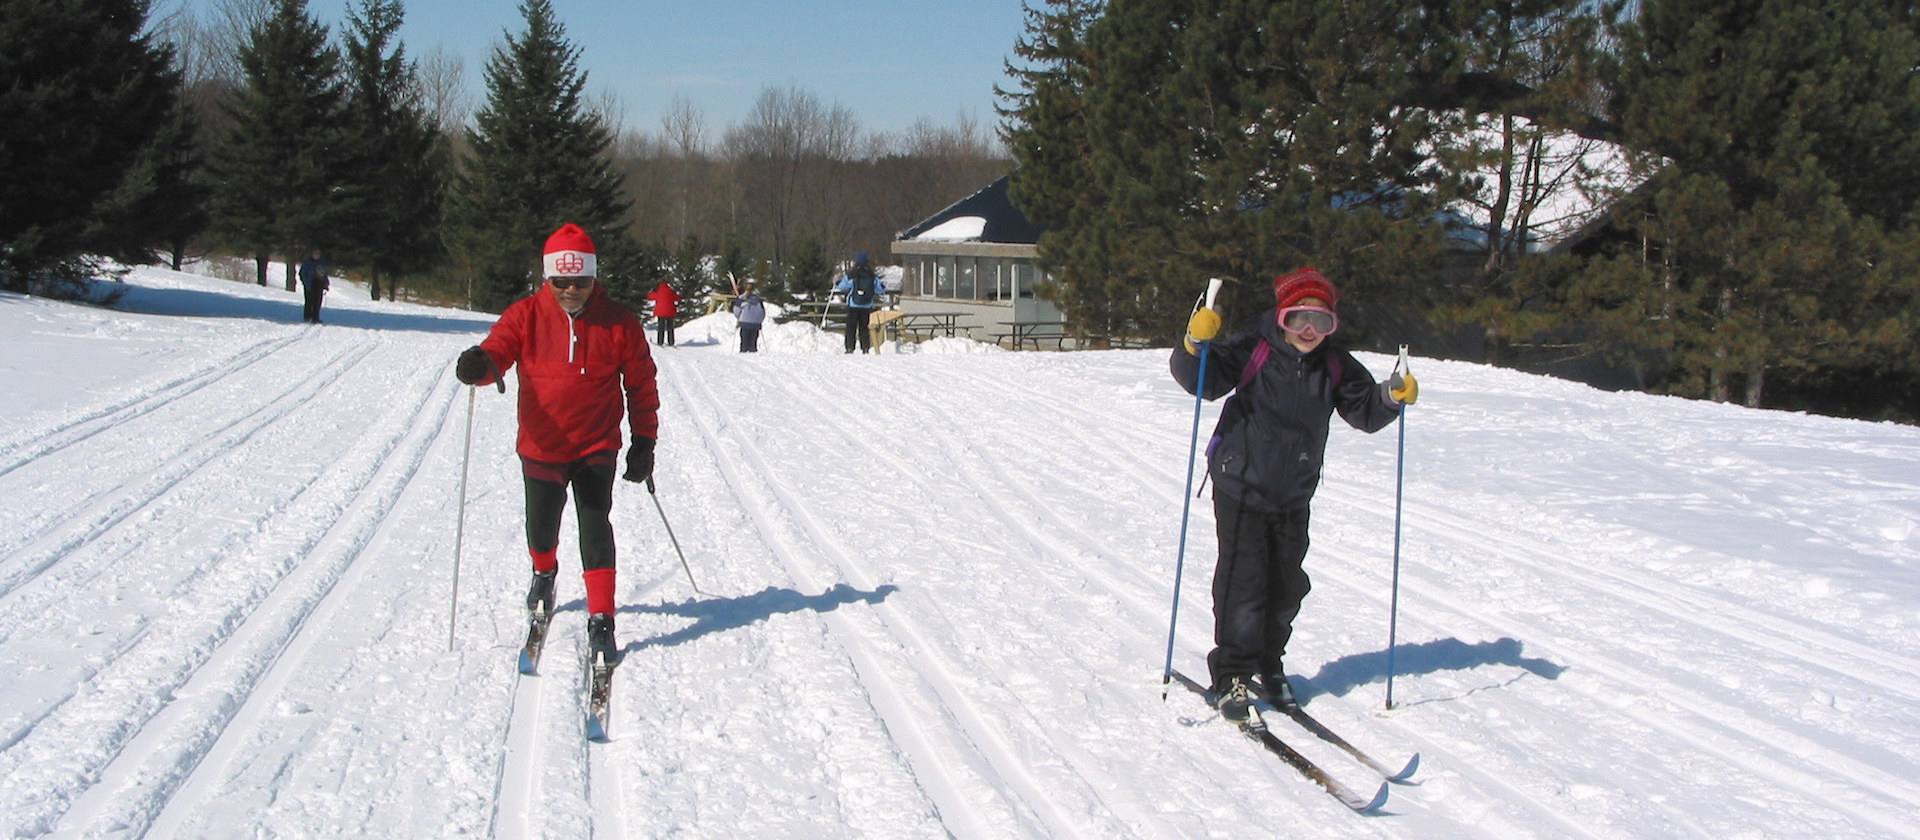 TRCA cross-country skiing at Albion Hills Conservation Area hero image